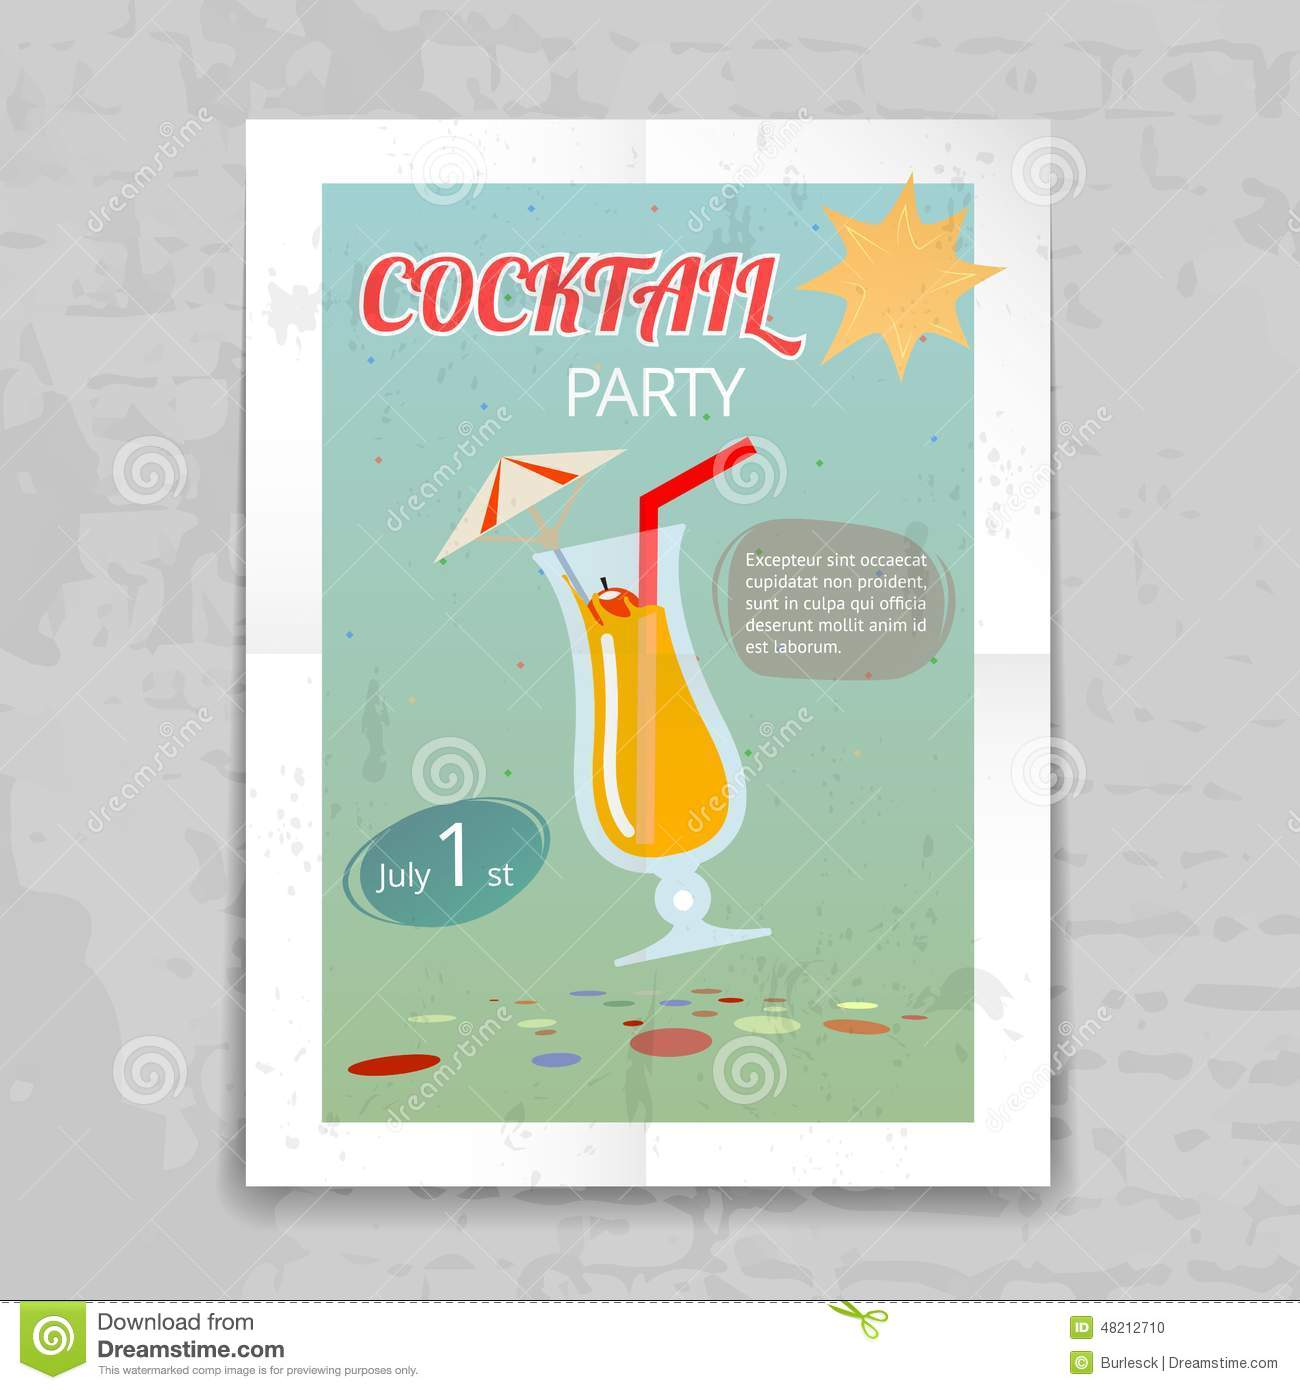 Vintage Cocktail Party Invitation Poster Stock Vector ...